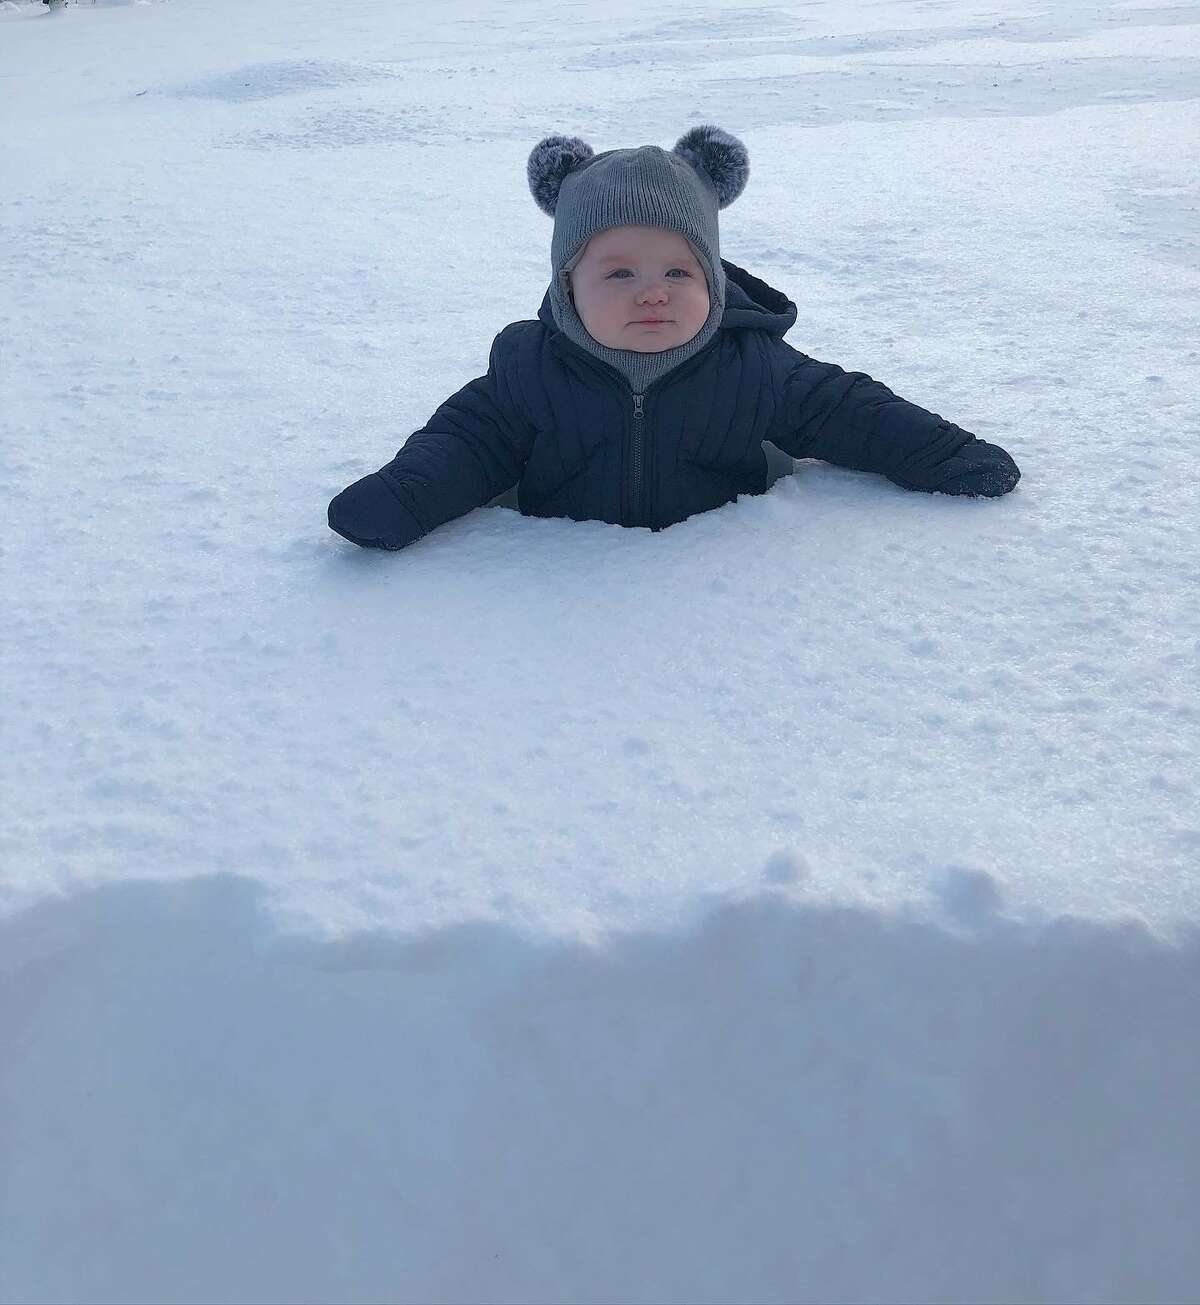 In this photo from a reader, Delaney James Gervasio, son of Noreen Gervasio, enjoys his first snowstorm.